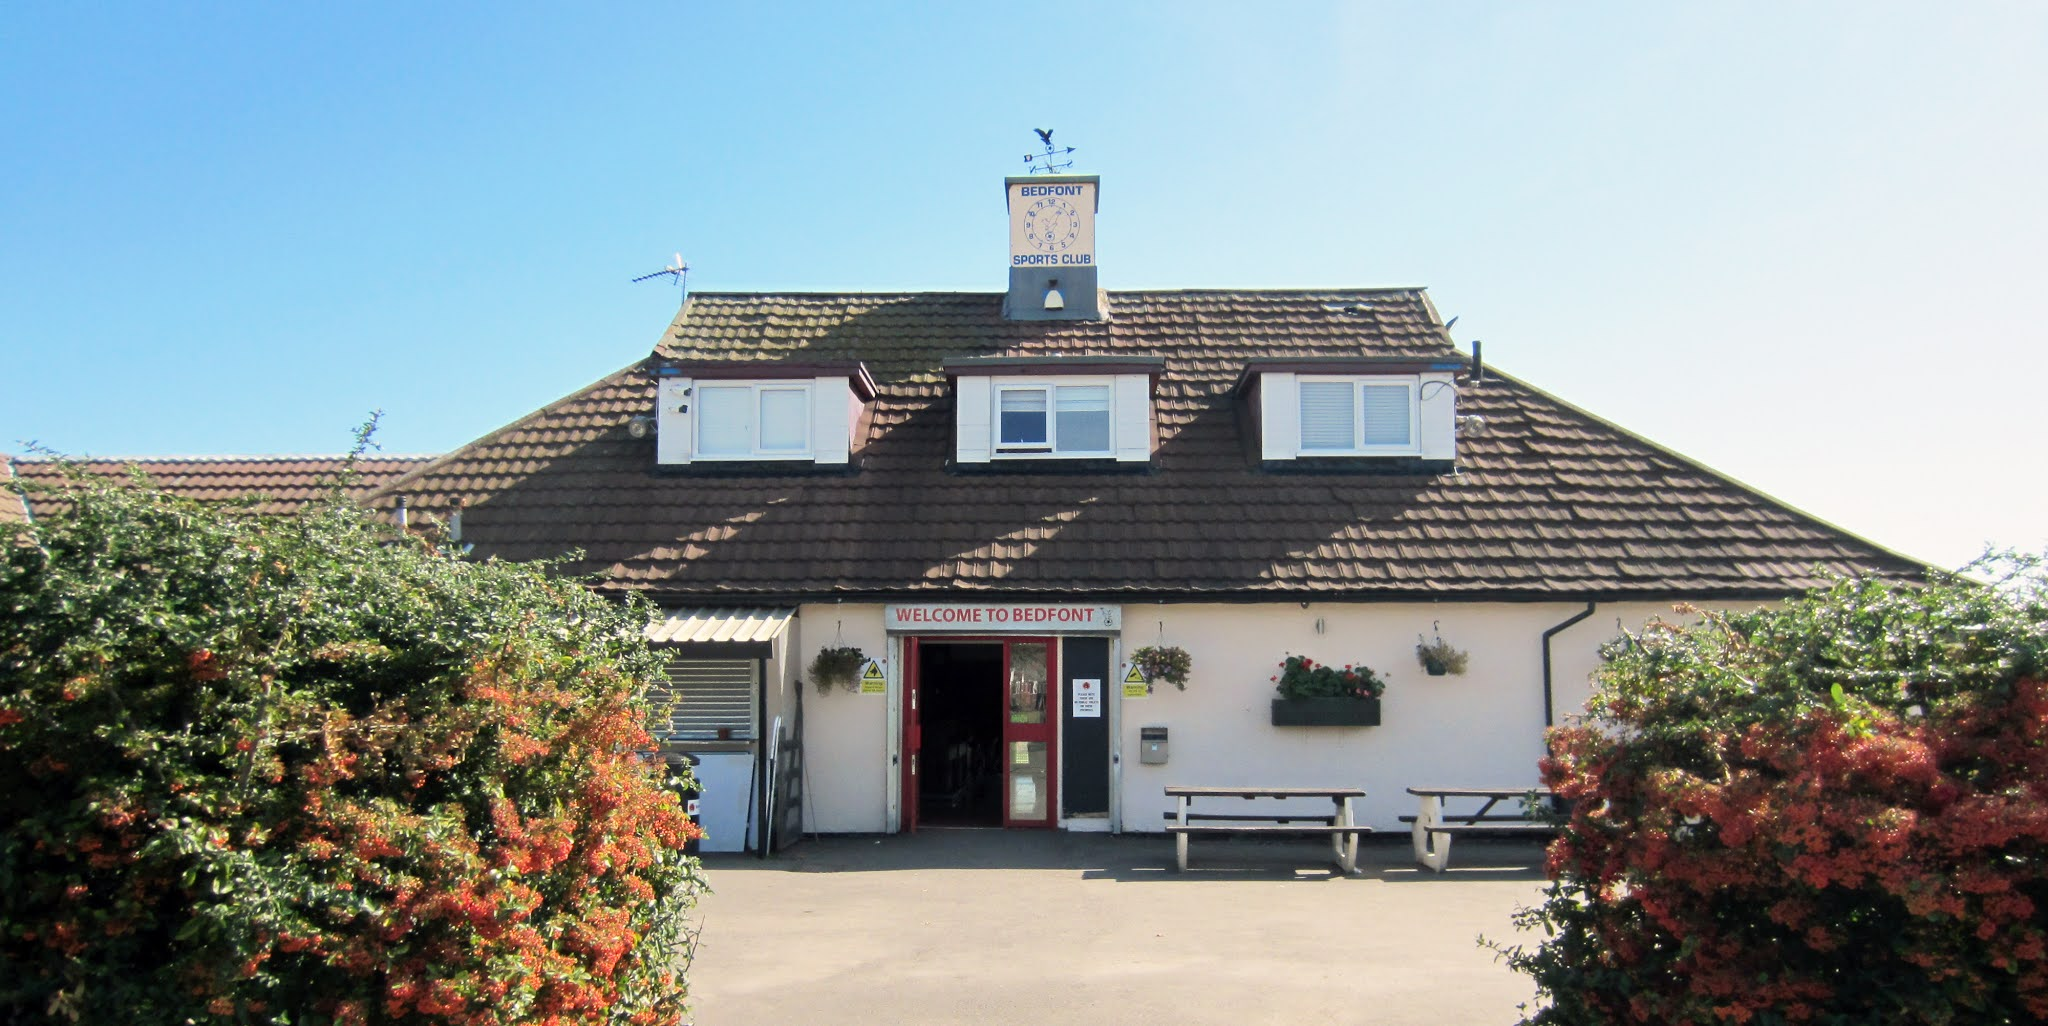 The clubhouse at Bedfont Sports Recreation Ground